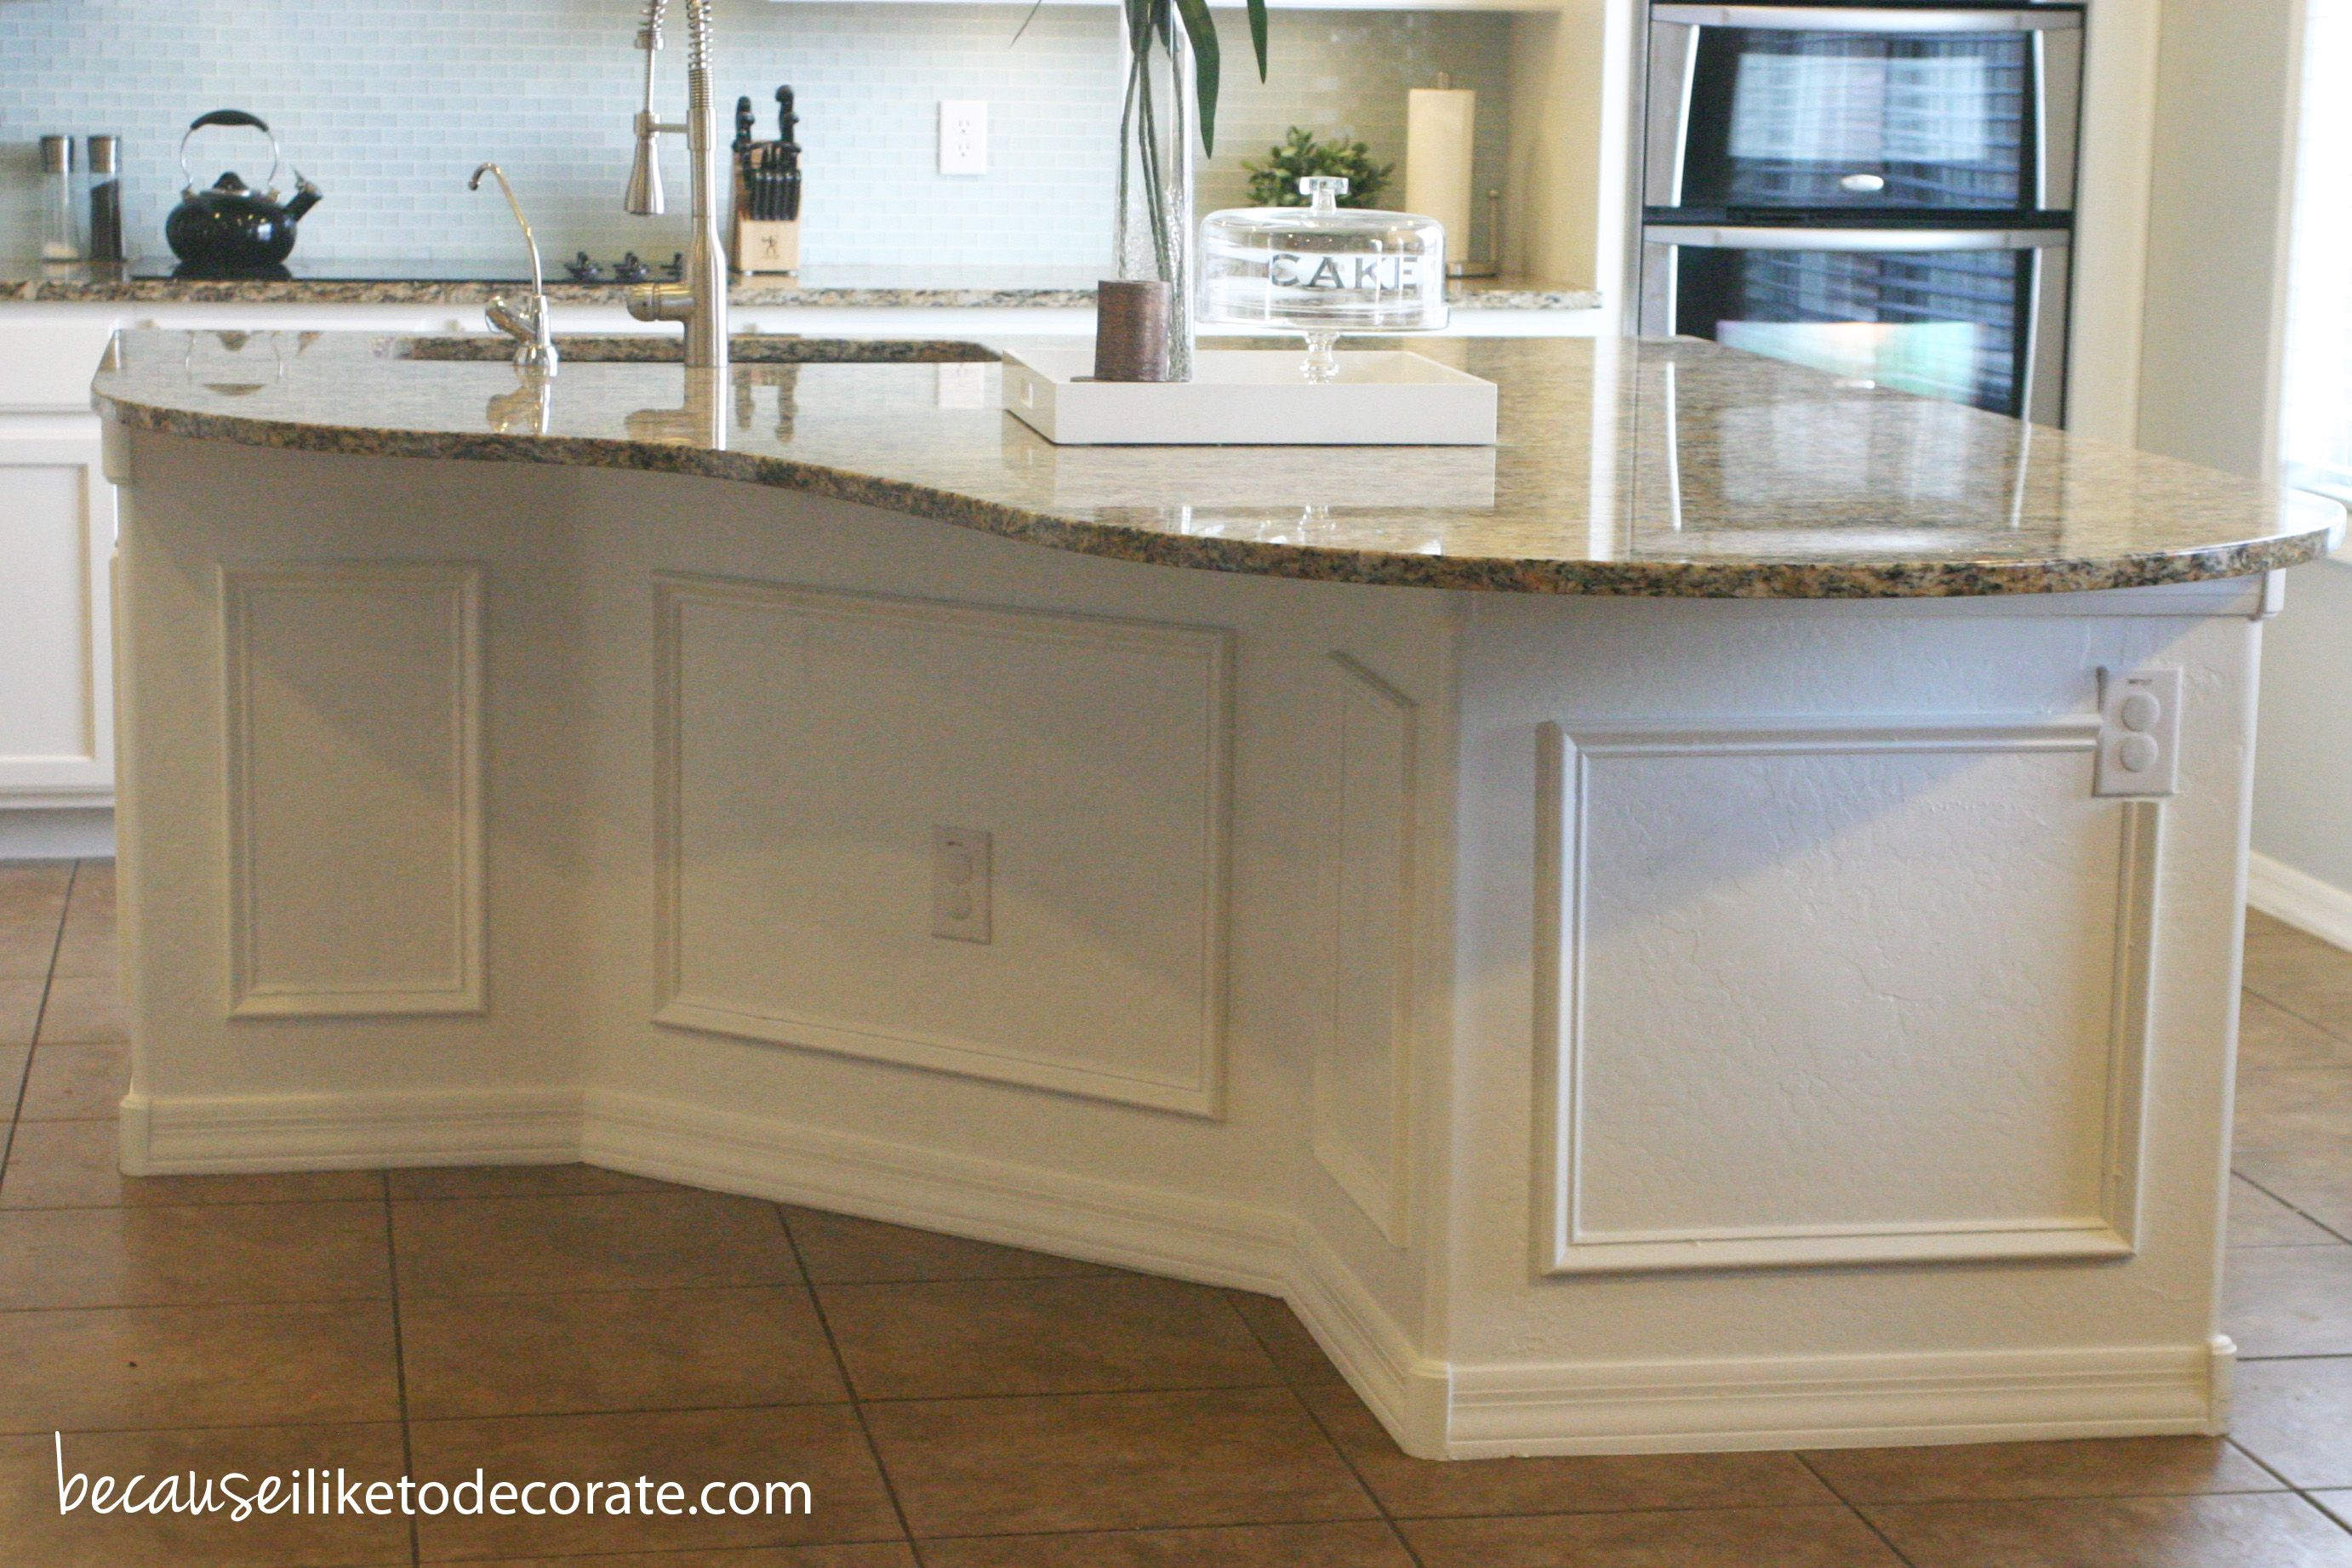 Kitchen Island Makeover With Picture Frame Wainscotting Wainscoting Kitchen,  Wainscoting Styles, Picture Frame Wainscoting